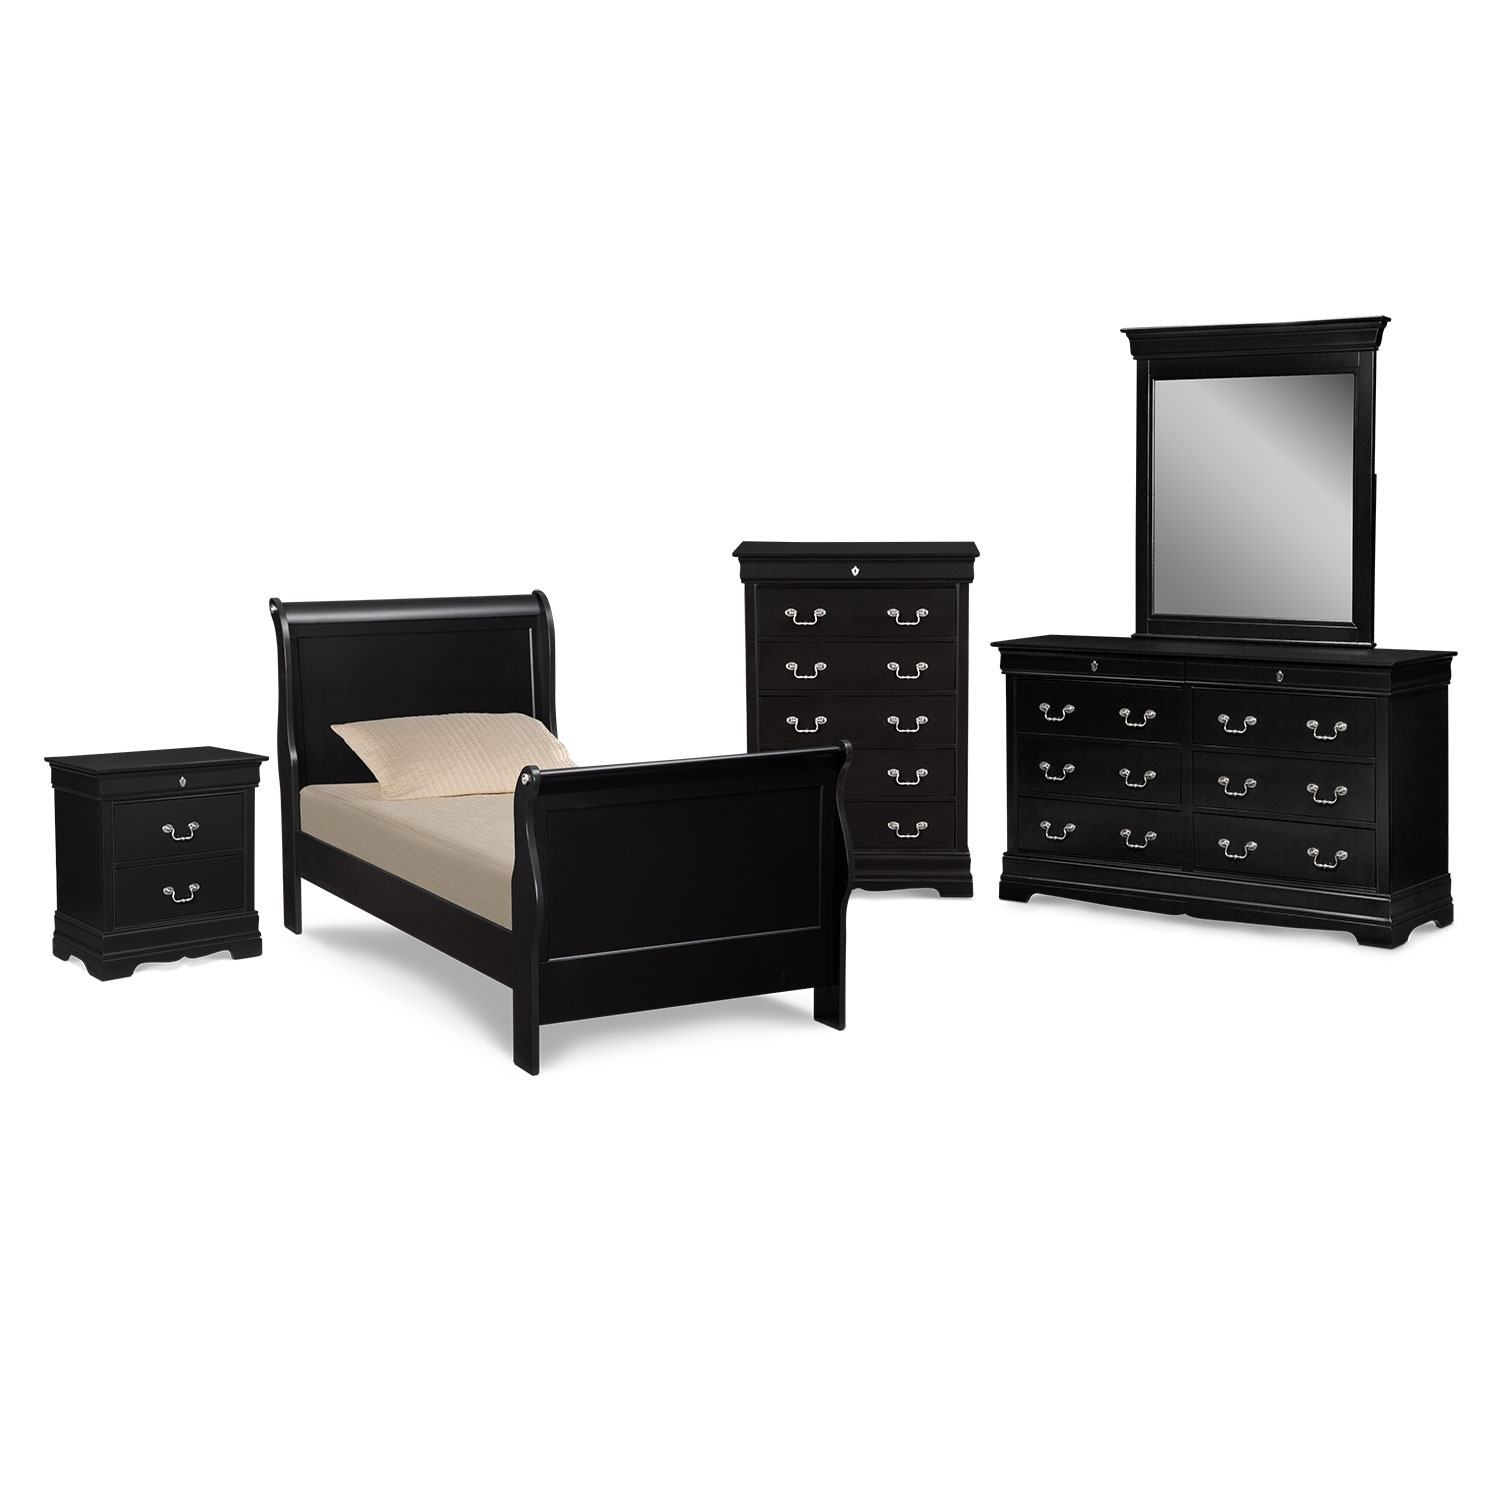 Kids Furniture - Neo Classic Youth 7-Piece Full Bedroom Set- Black